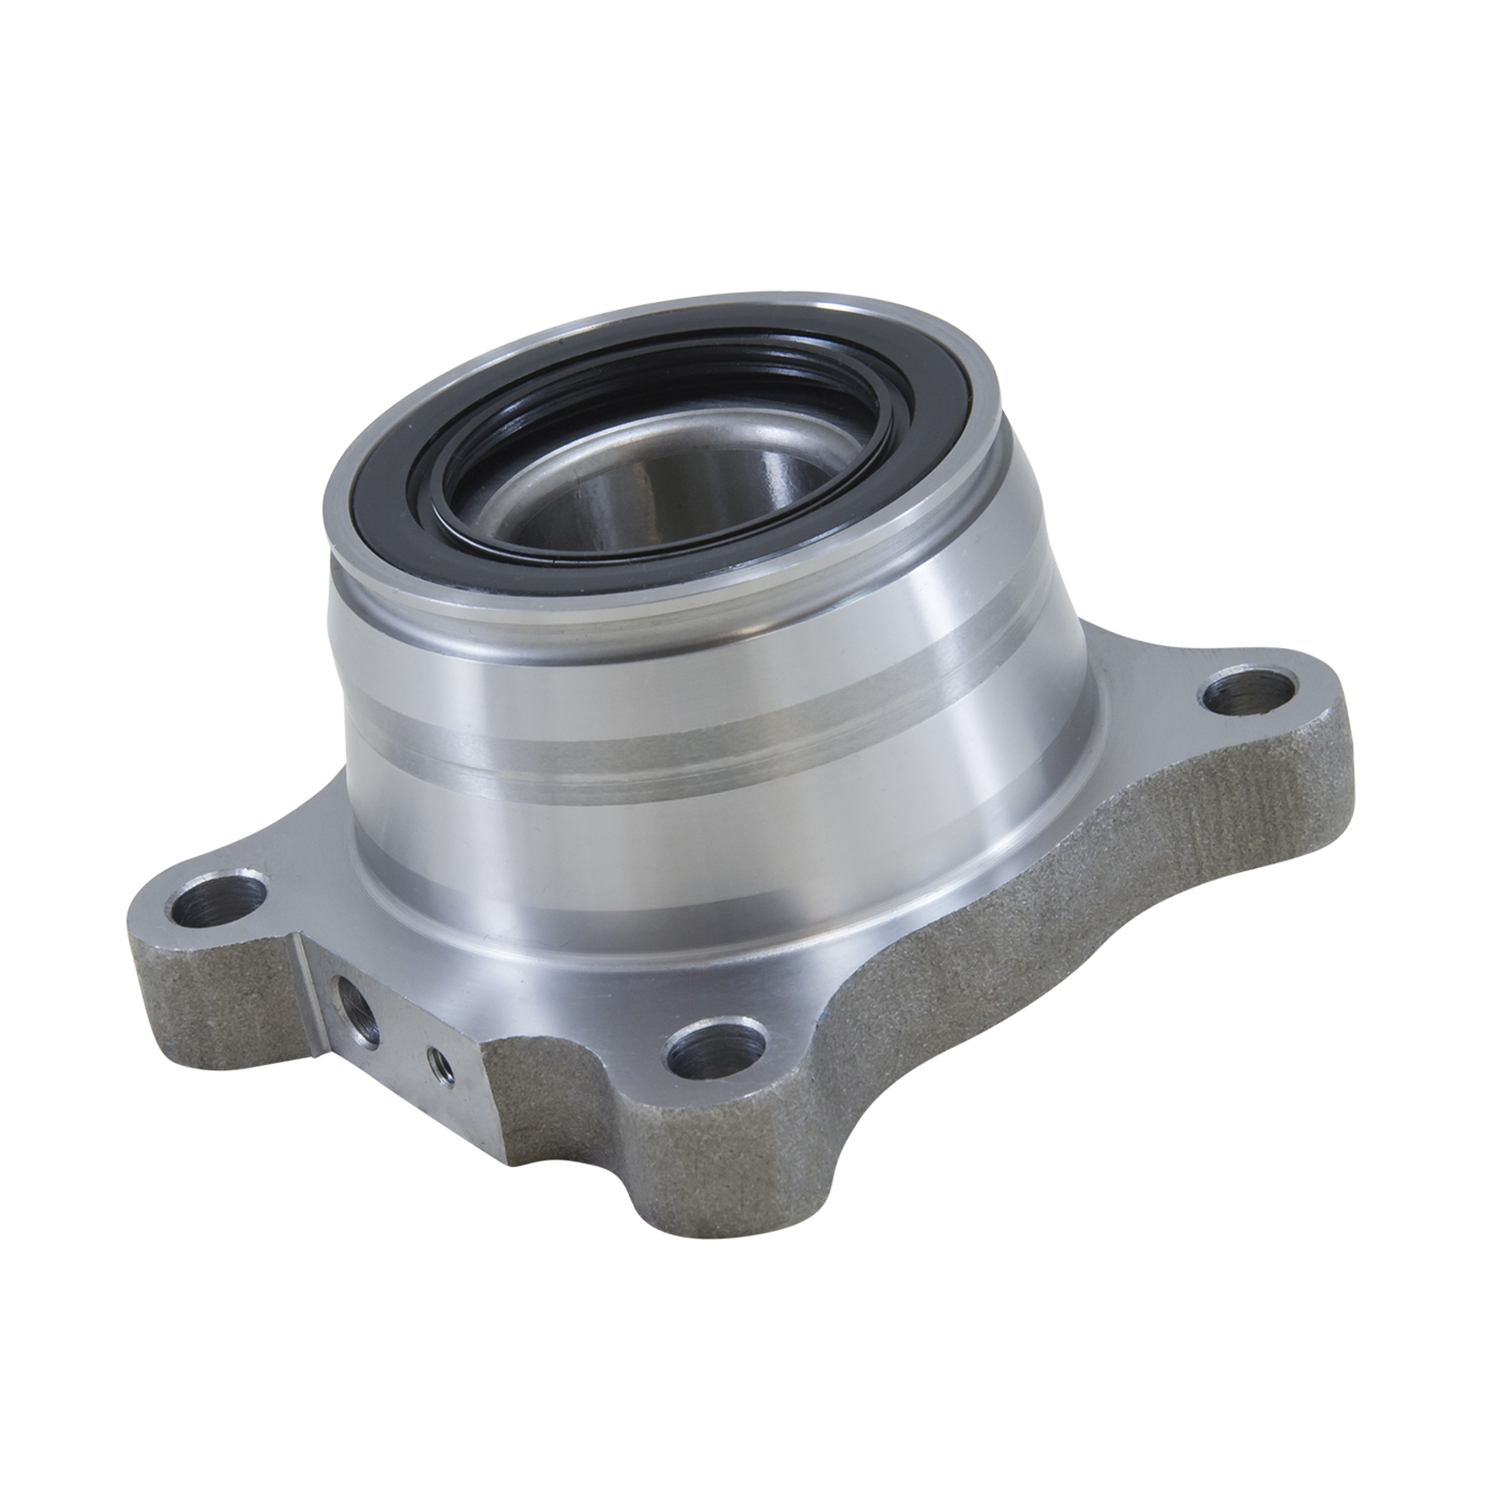 YB U43378 - Yukon replacement unit bearing for '84-'90 Dana 30 front, 3 bolt style.